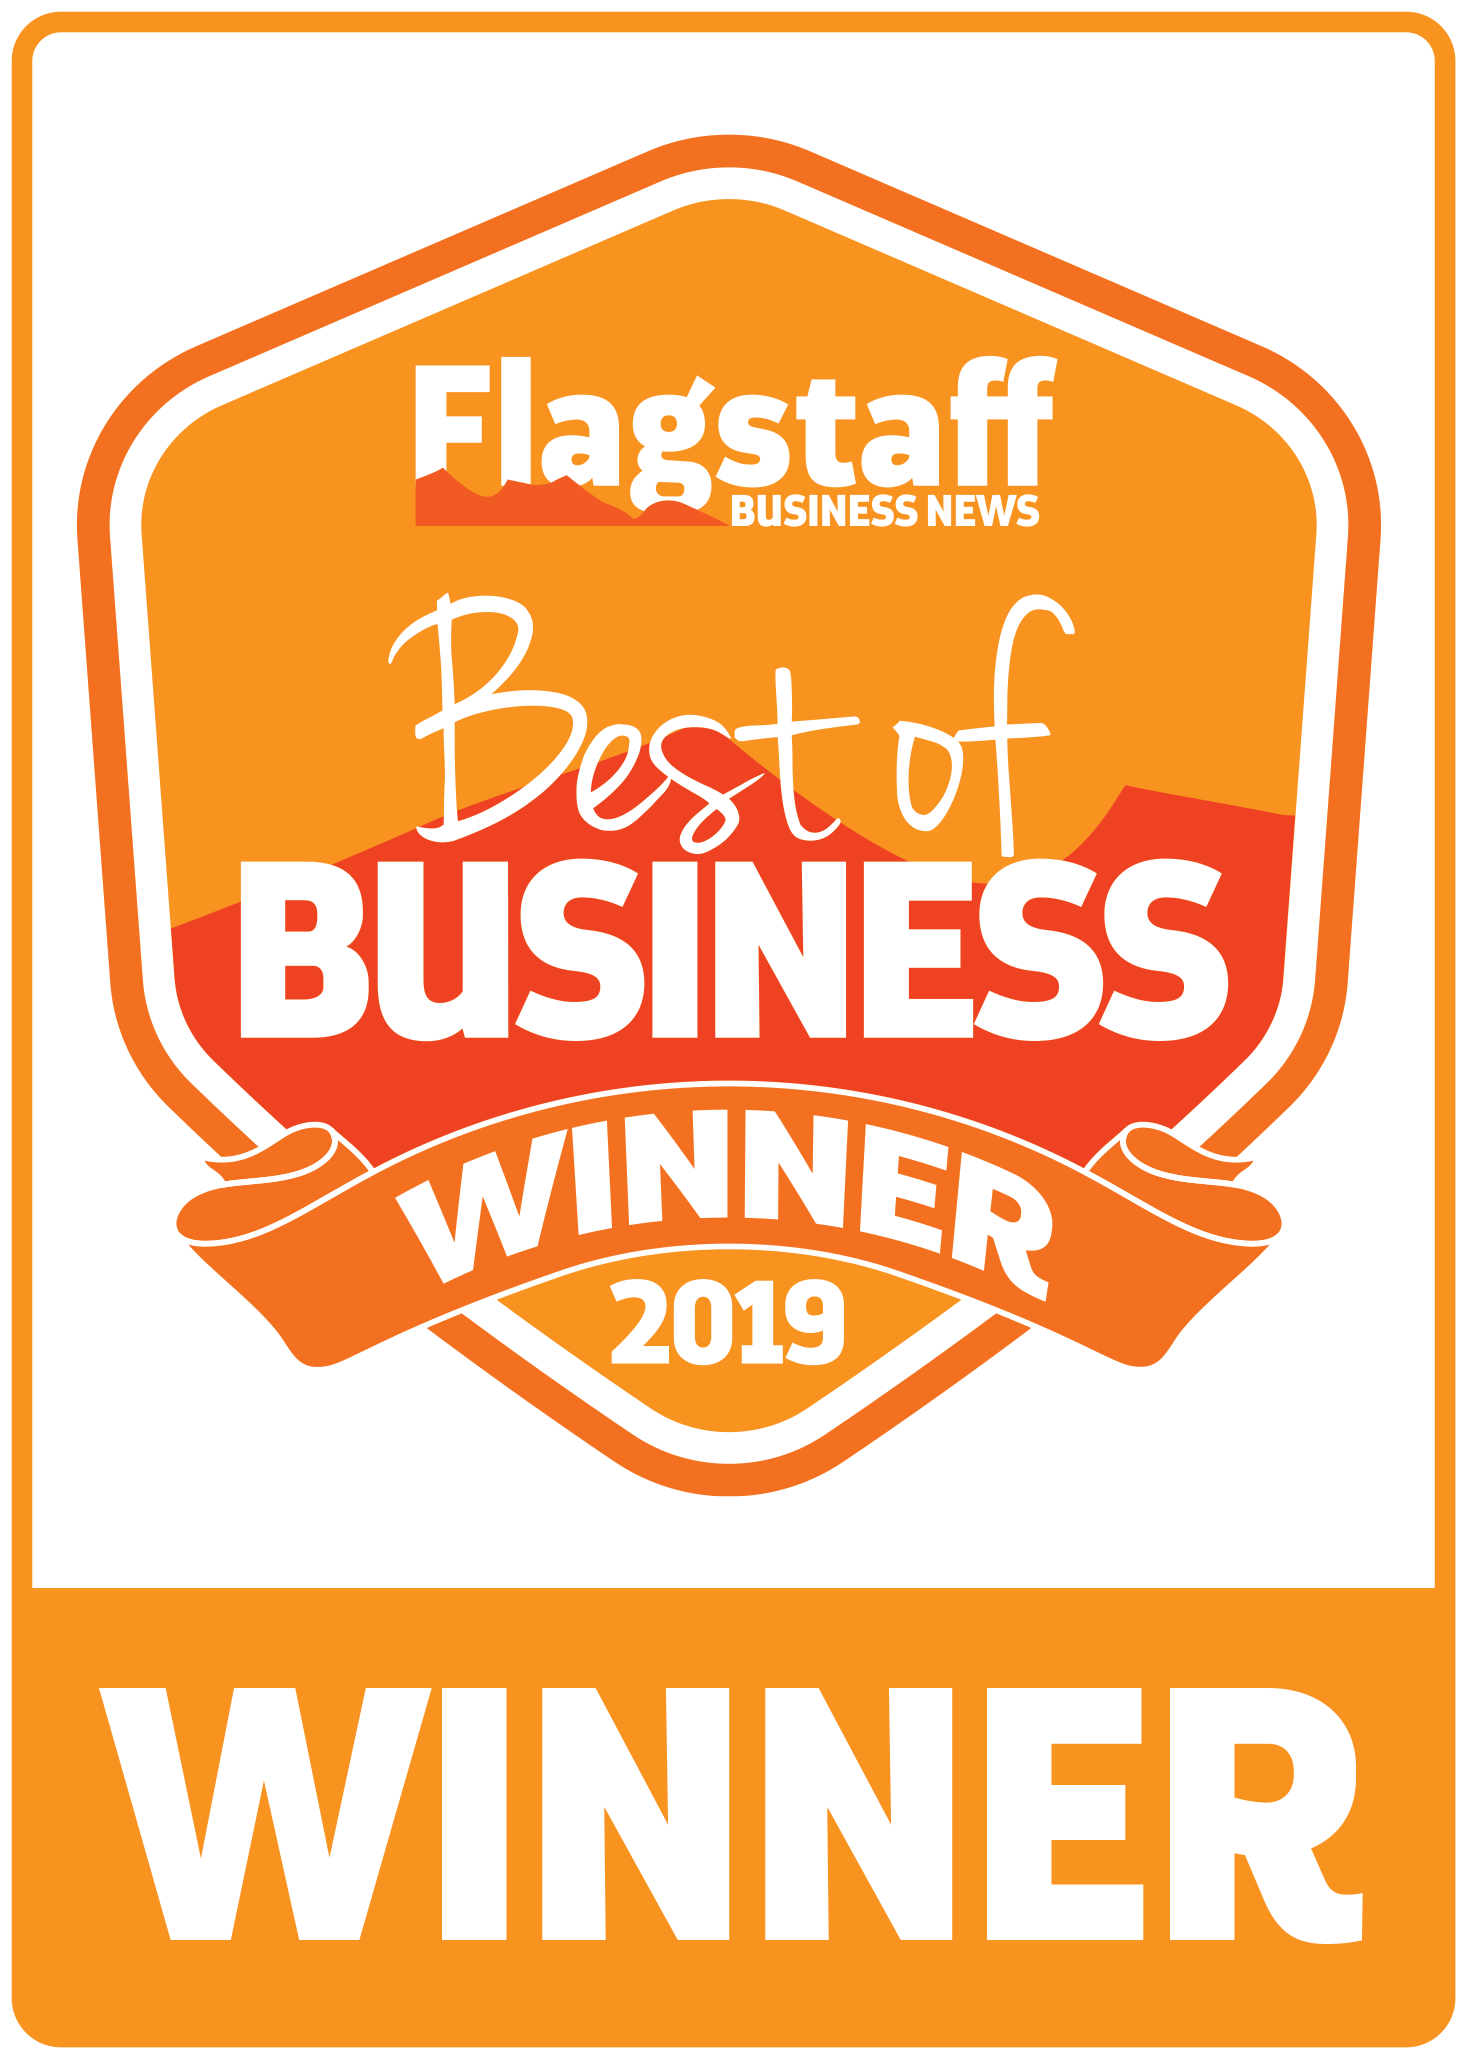 Flagstaff Business News best of Business Winner Award 2019